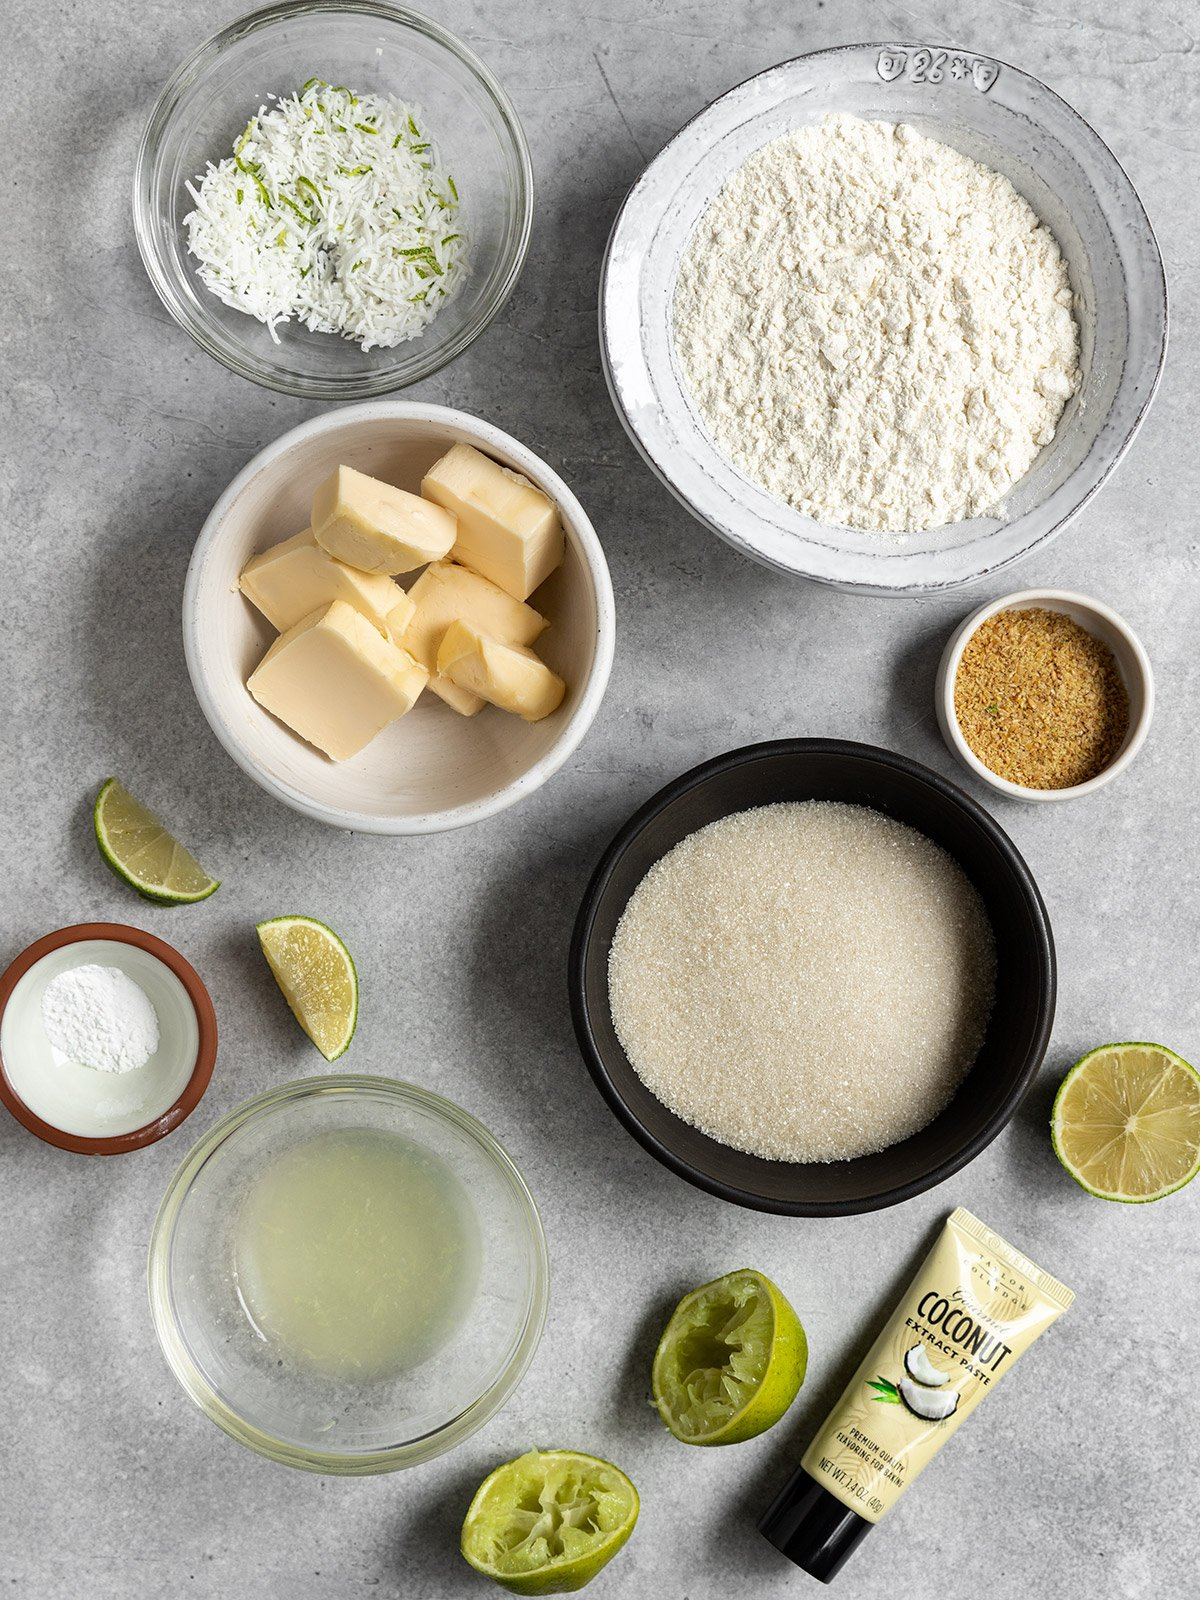 ingredients in bowls for coconut lime cookies